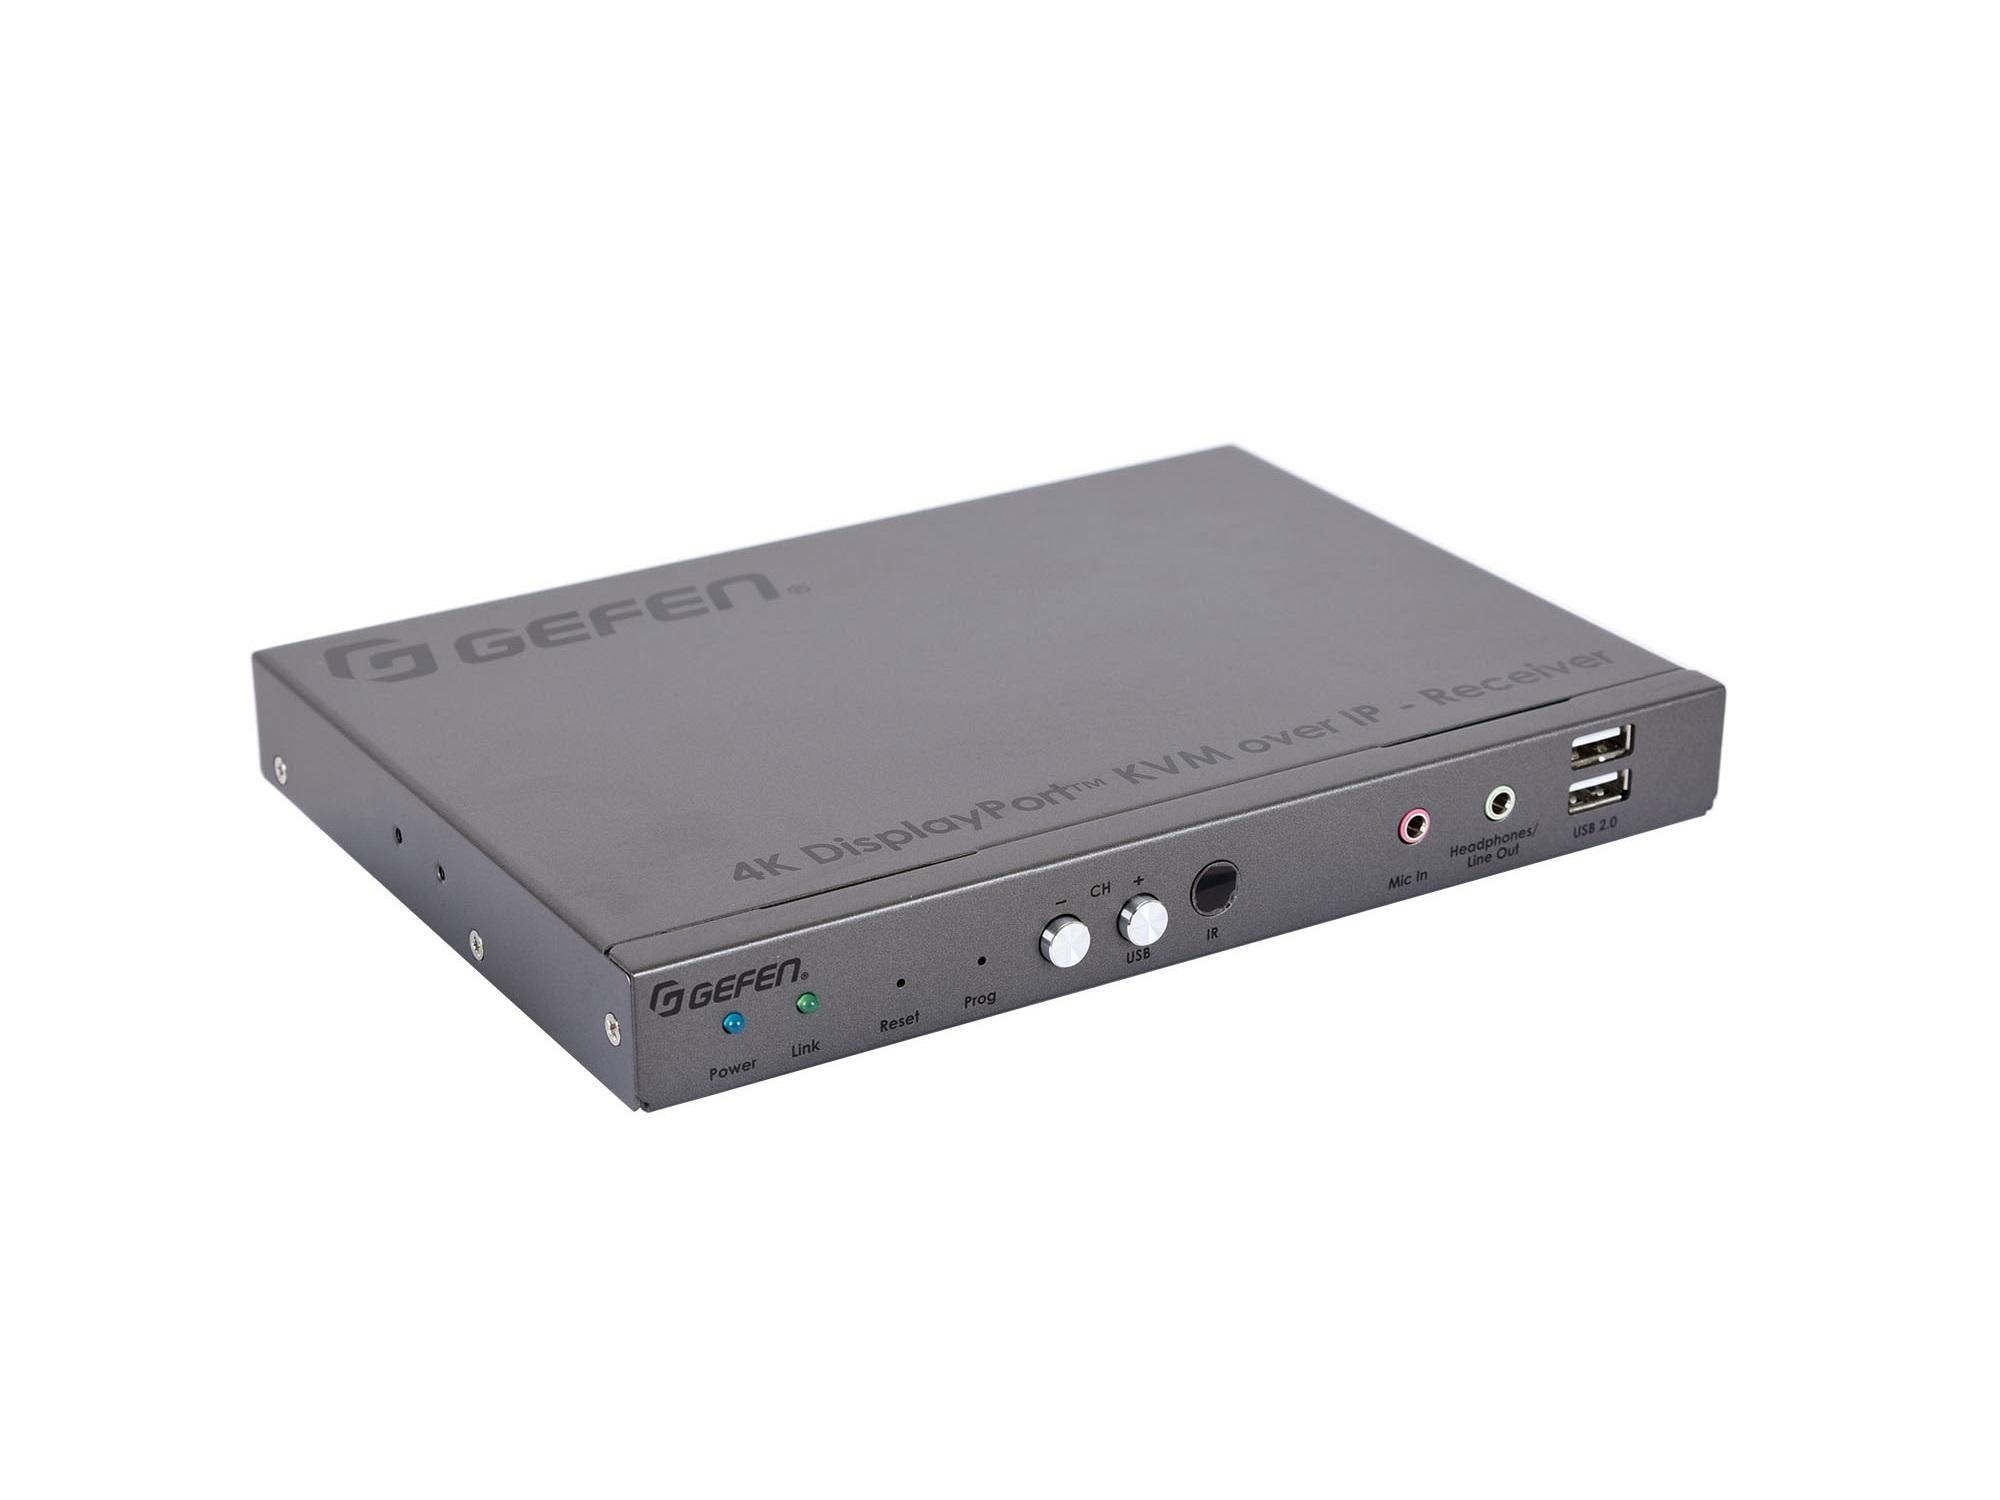 Gefen EXT-DPKA-LANS-RX 4K DisplayPort KVM over IP Extender (Receiver) with USB/Audio/RS-232/IR